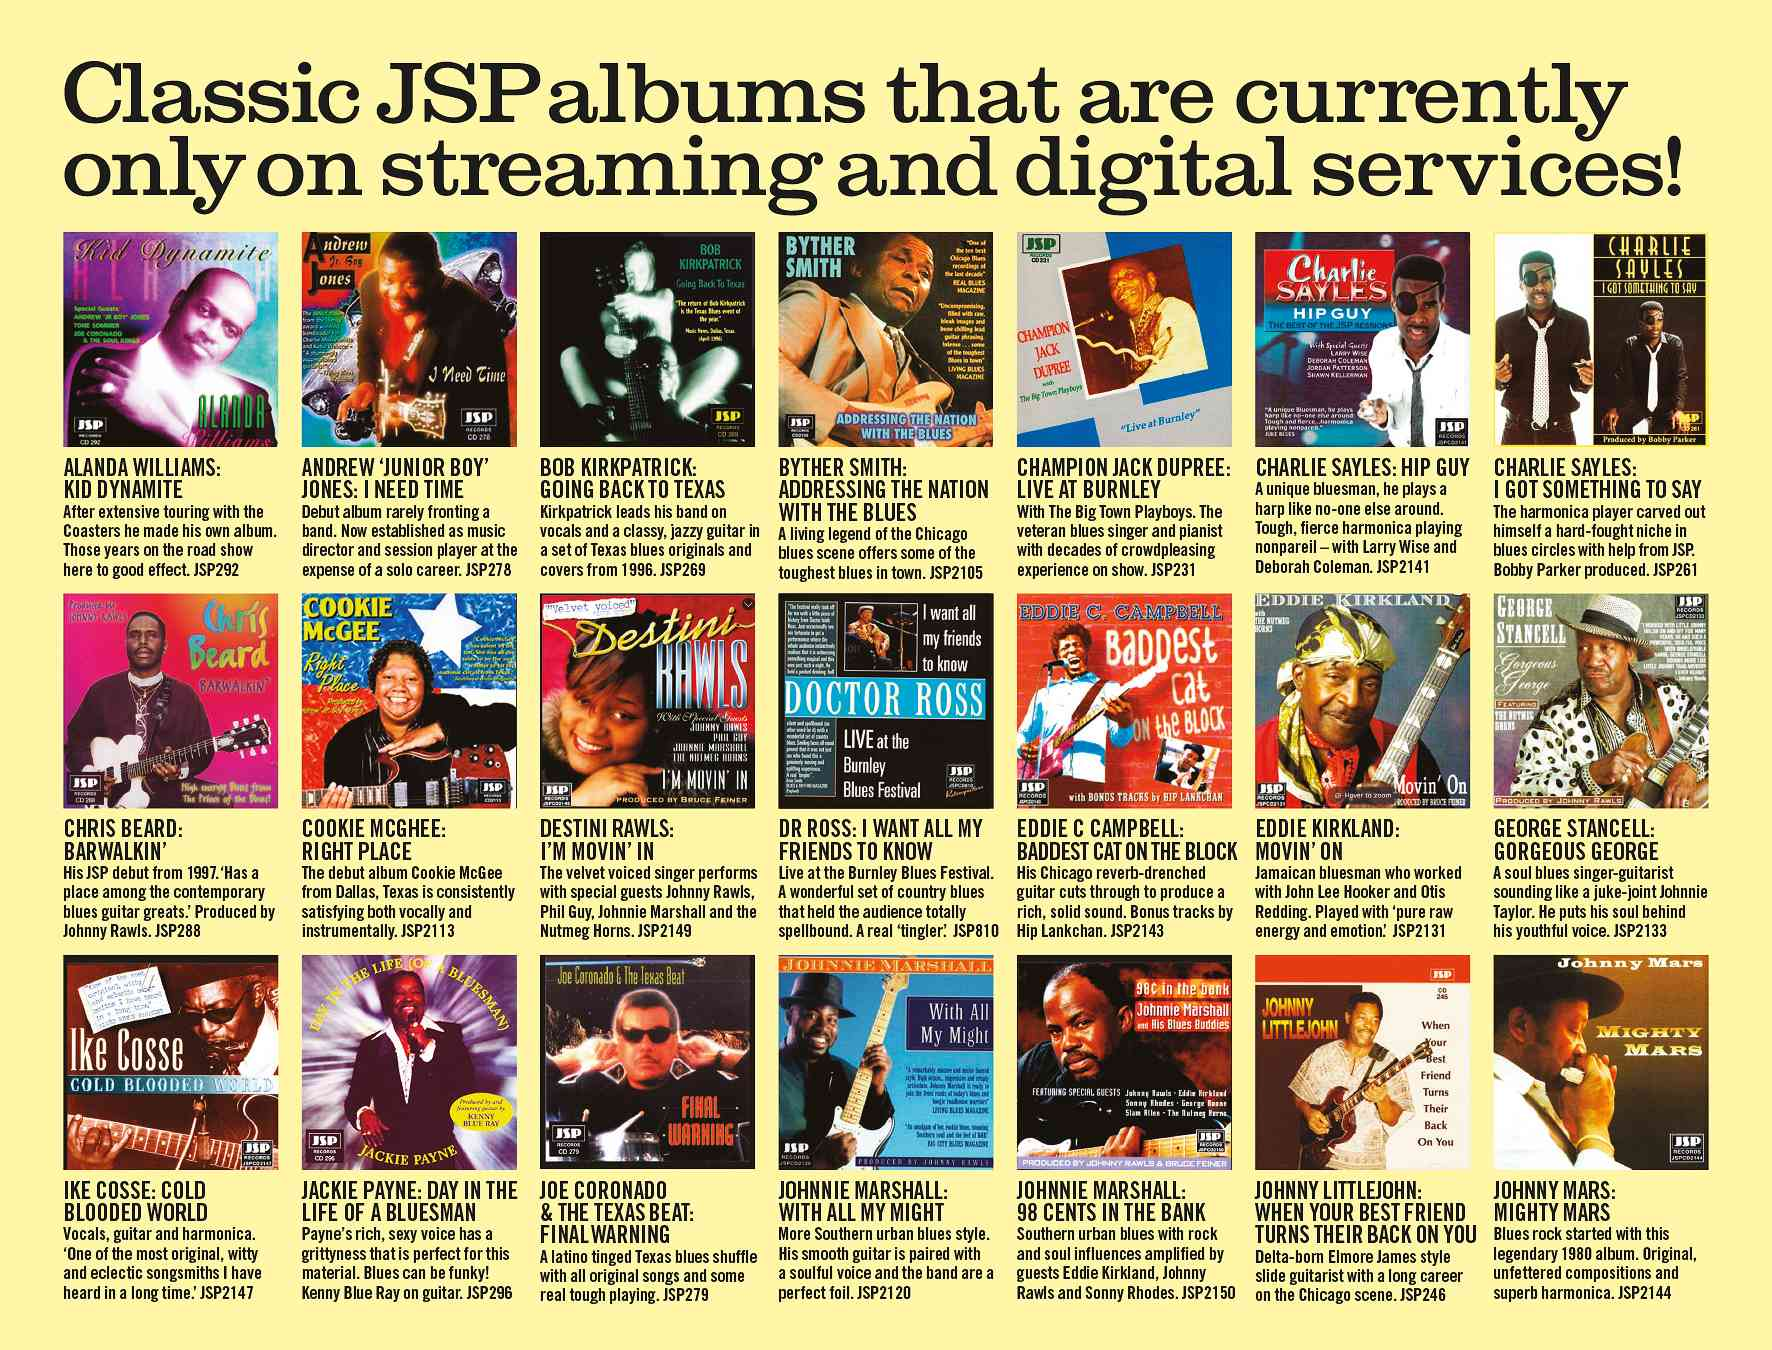 Classic JSP Albums That Are Currently Only On Streaming and Digital Services